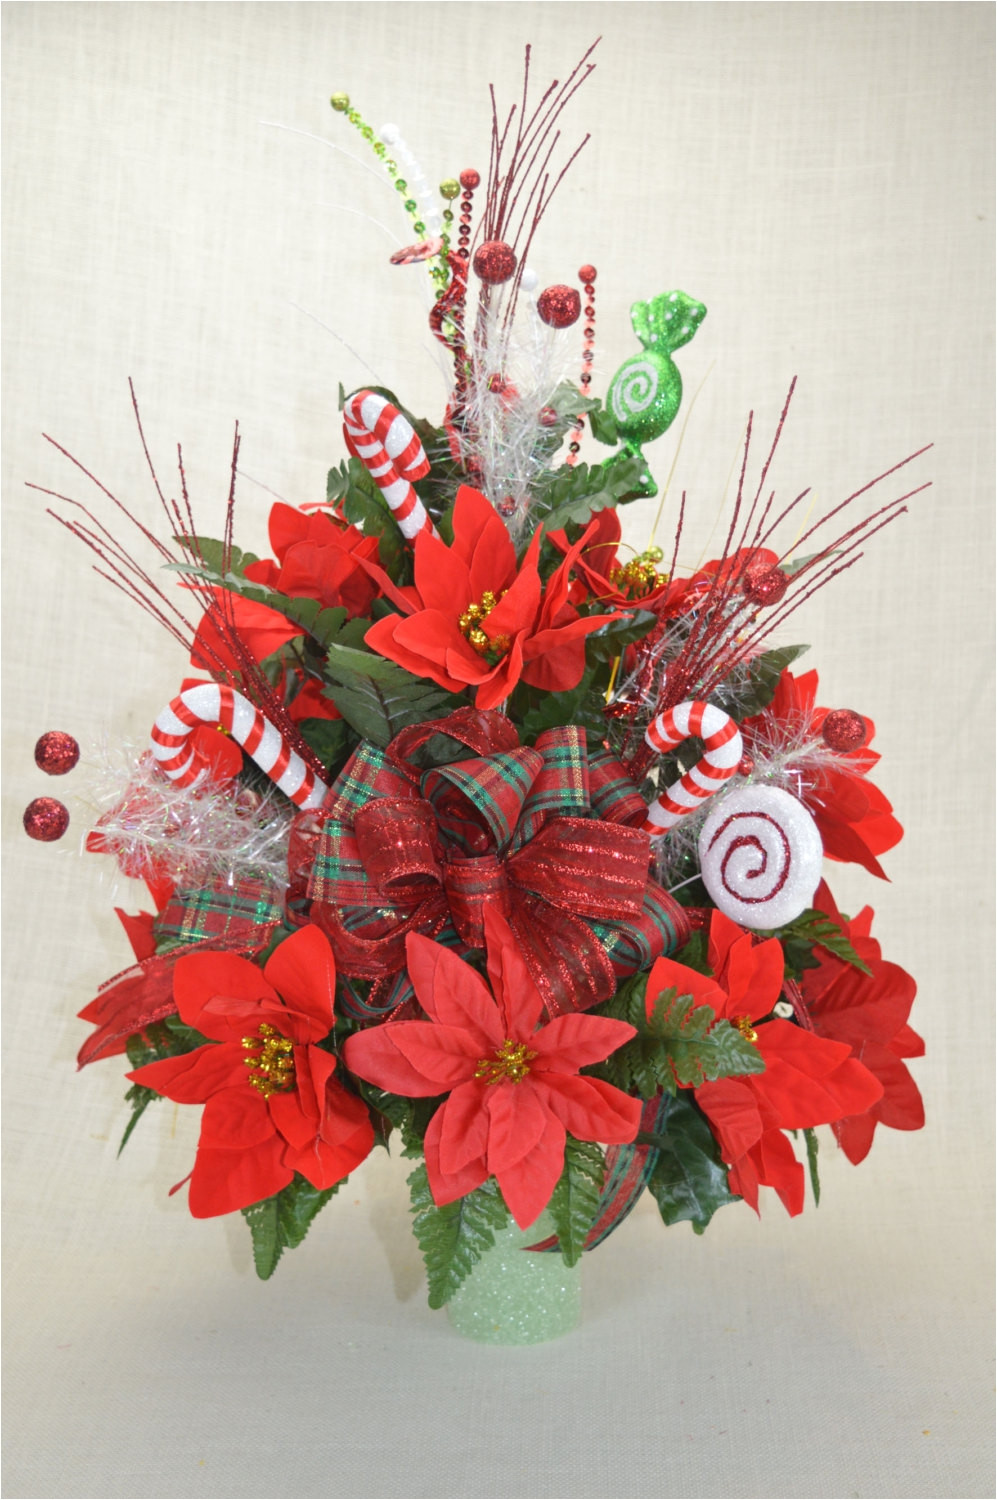 vase table decorations of cemetery christmas decoration ideas vases tombstone foreversafe pertaining to cemetery christmas decoration ideas vases tombstone foreversafe cemetery vase product informationi 0d